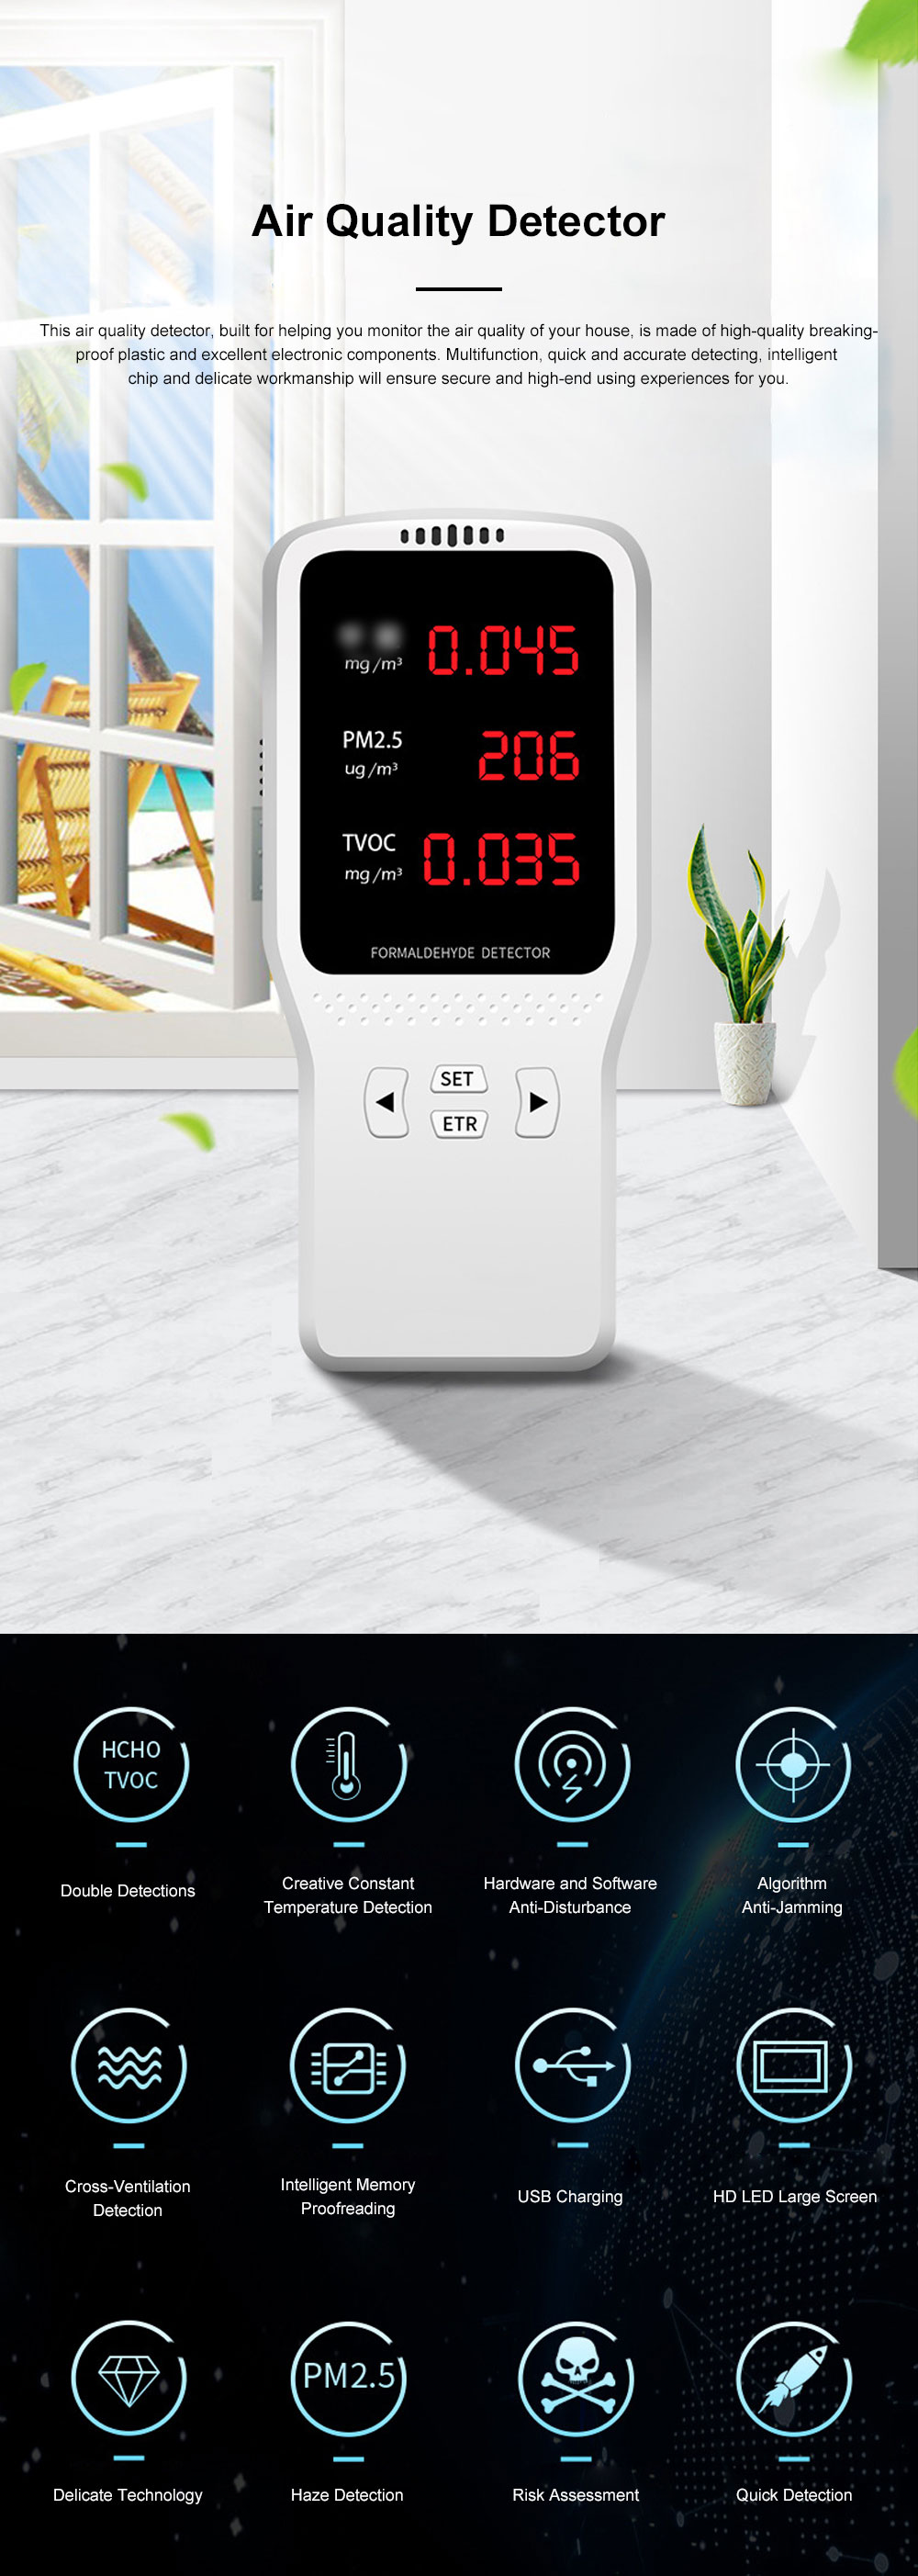 JBL Professional Stable Quick Household PM2.5 TVOC Formaldehyde Air Quality Detector with Intelligent Chip Large HD Screen 0